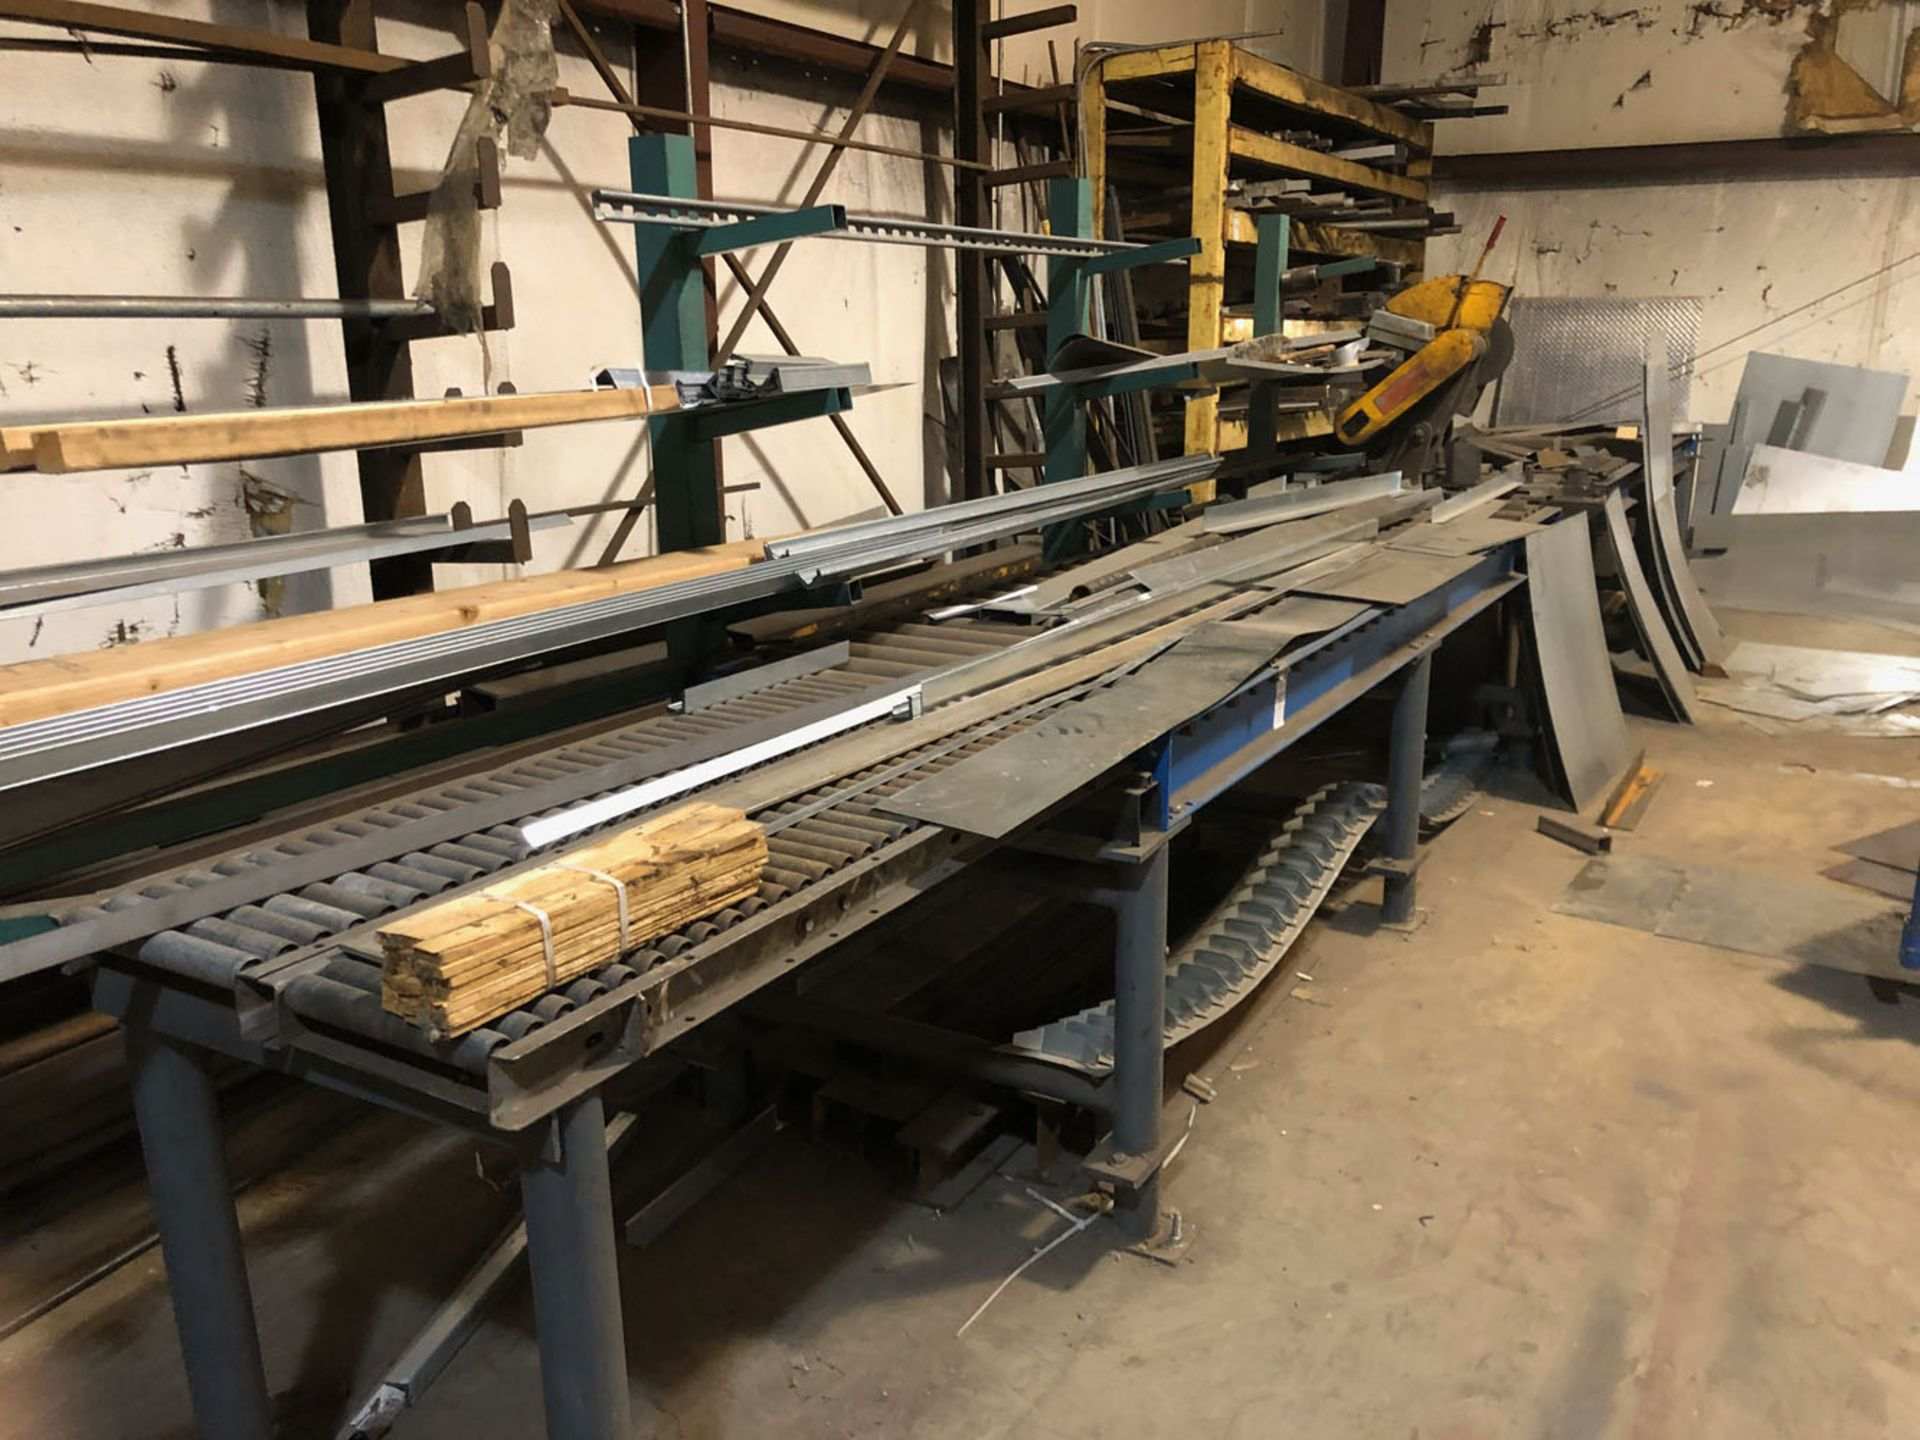 Lot 103 - Saw, Cut Off and Roller Table